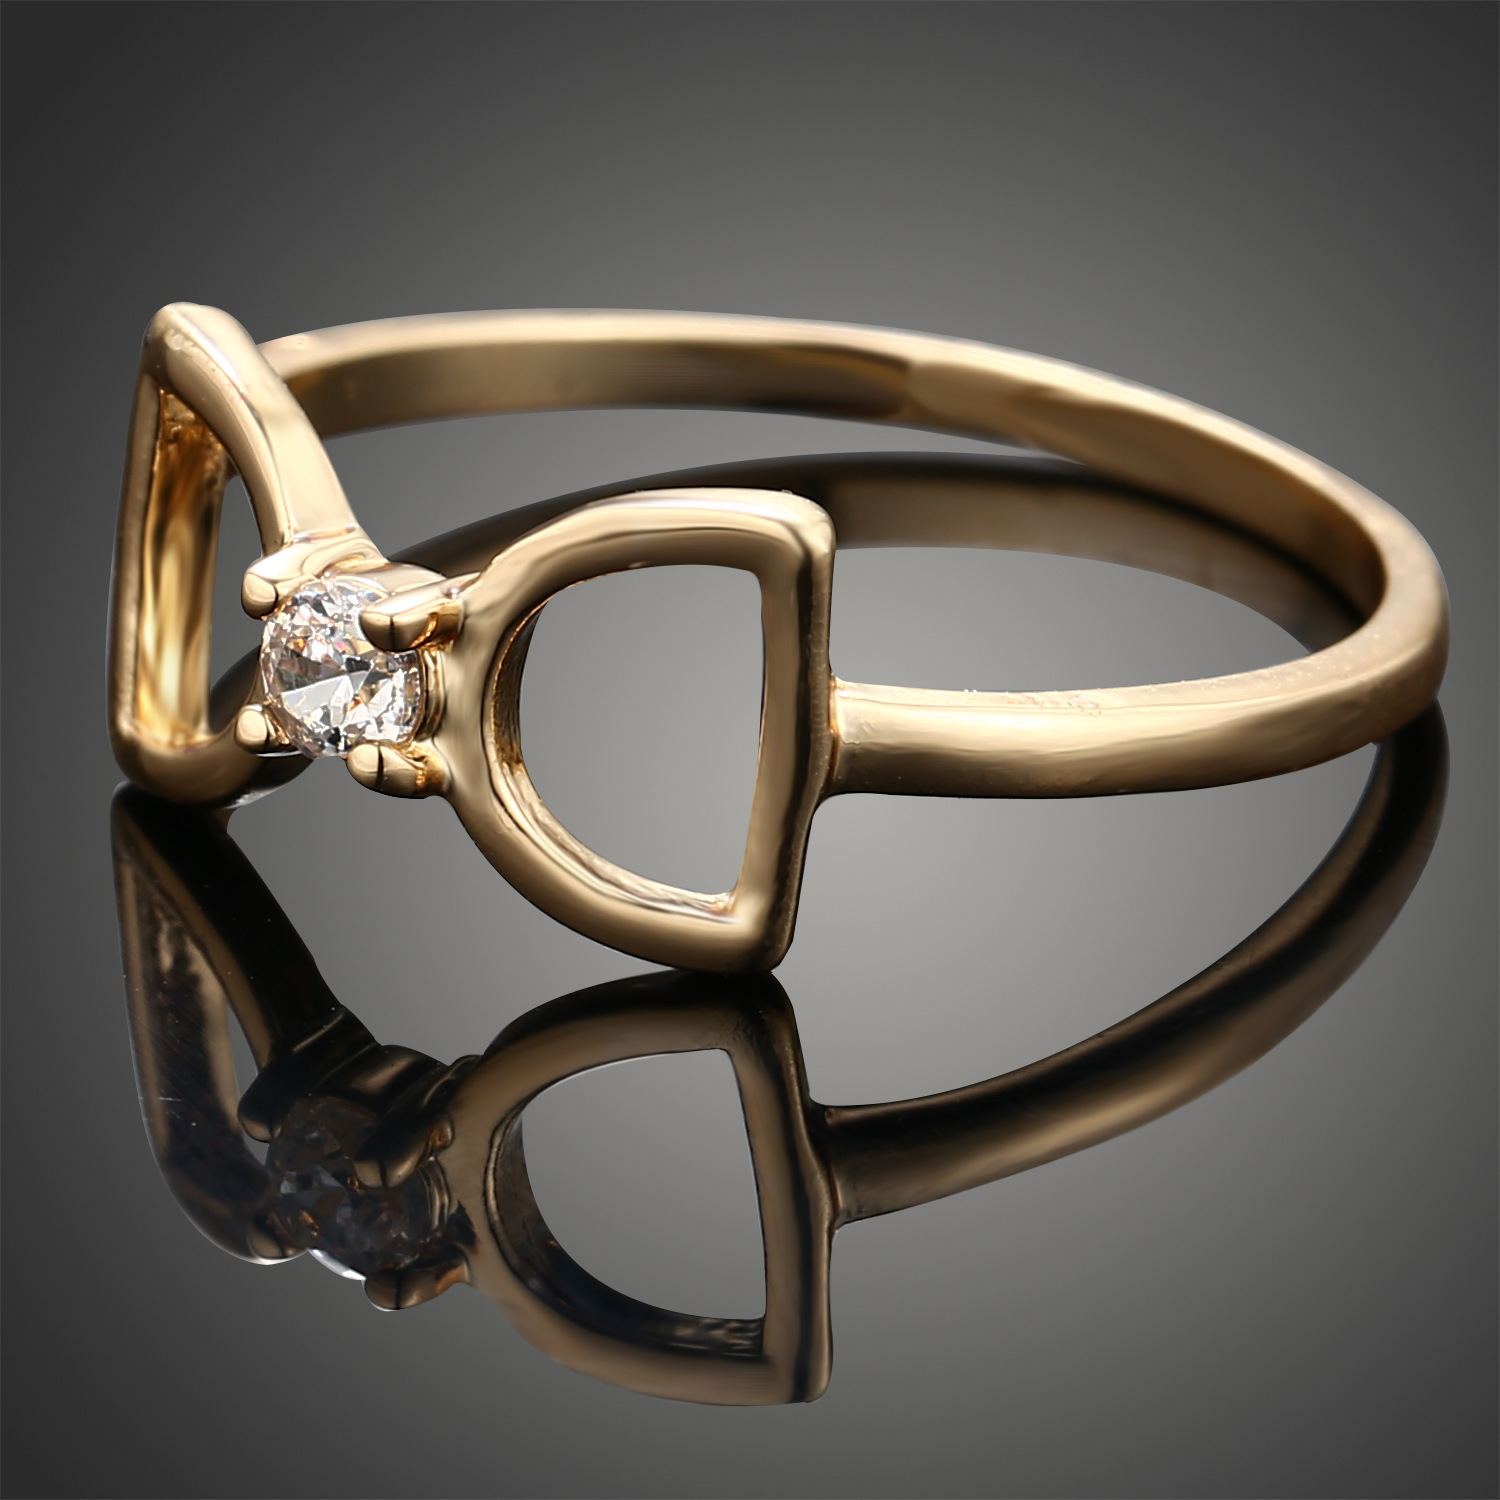 products drop diamond band ring cut korean rings double tia open cz korea gold